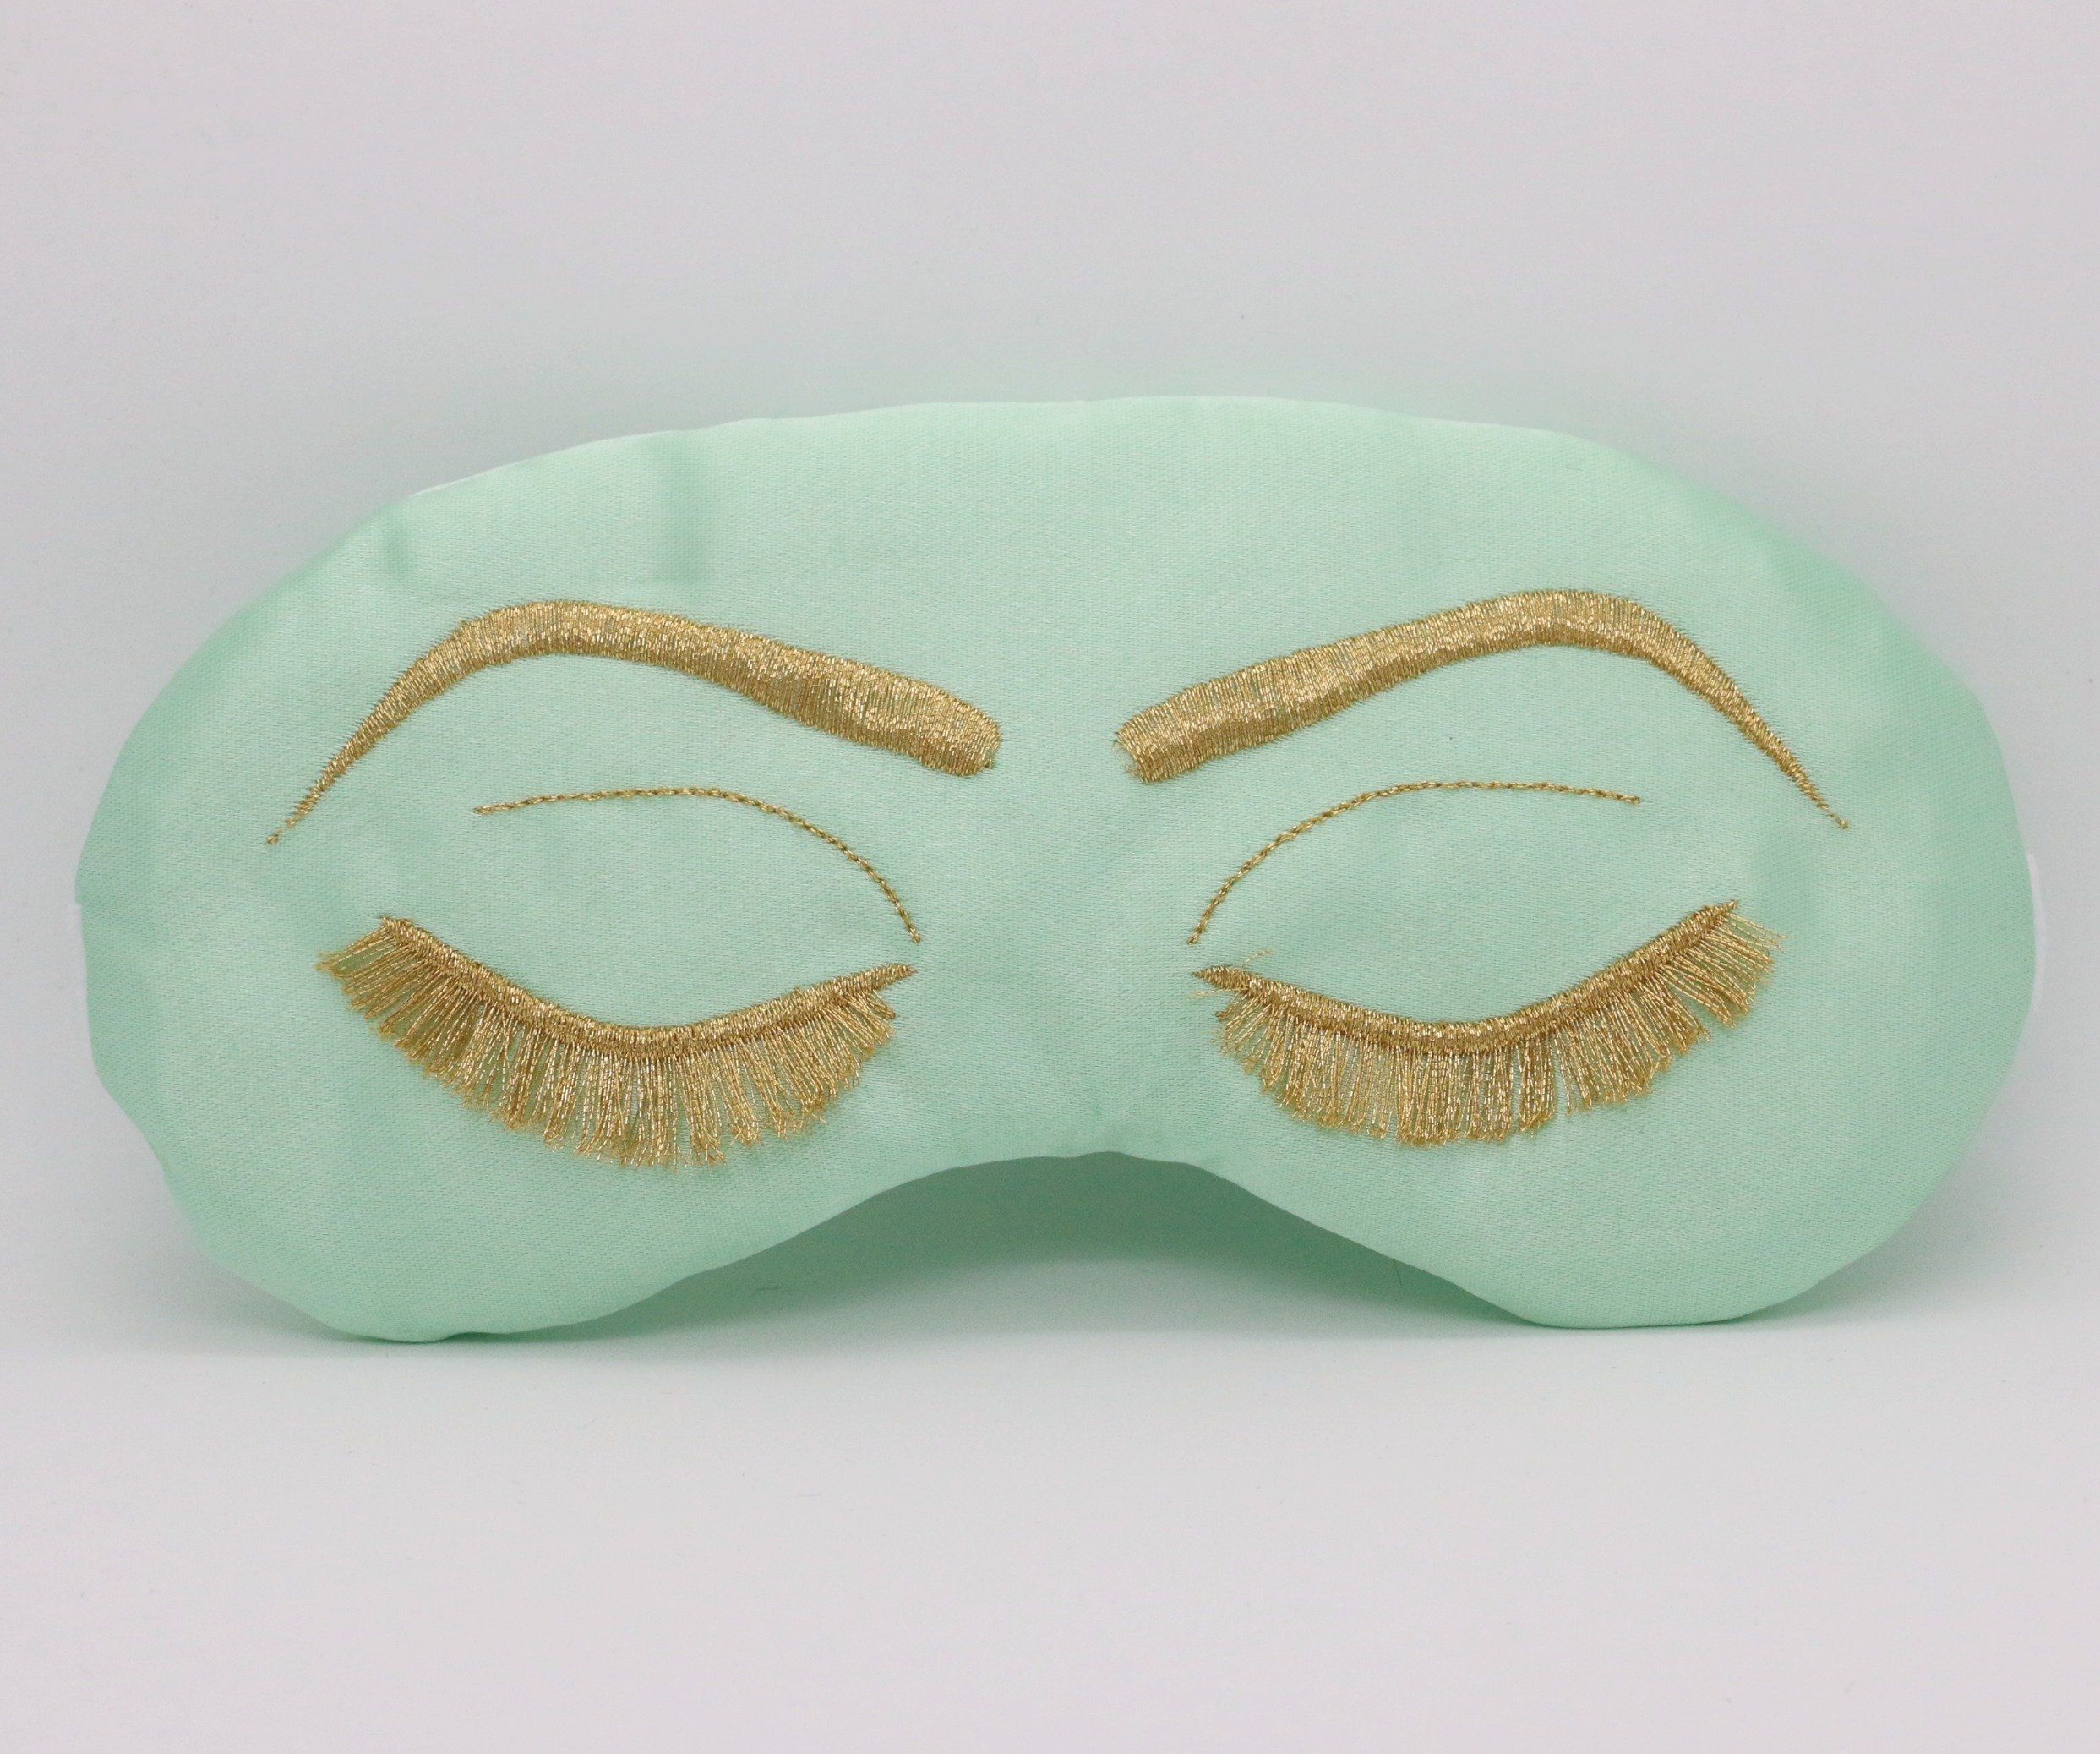 Hollywood Glam Sleep Mask Regency Style Breakfast at Tiffanys Audrey Hepburn- Mint Julep